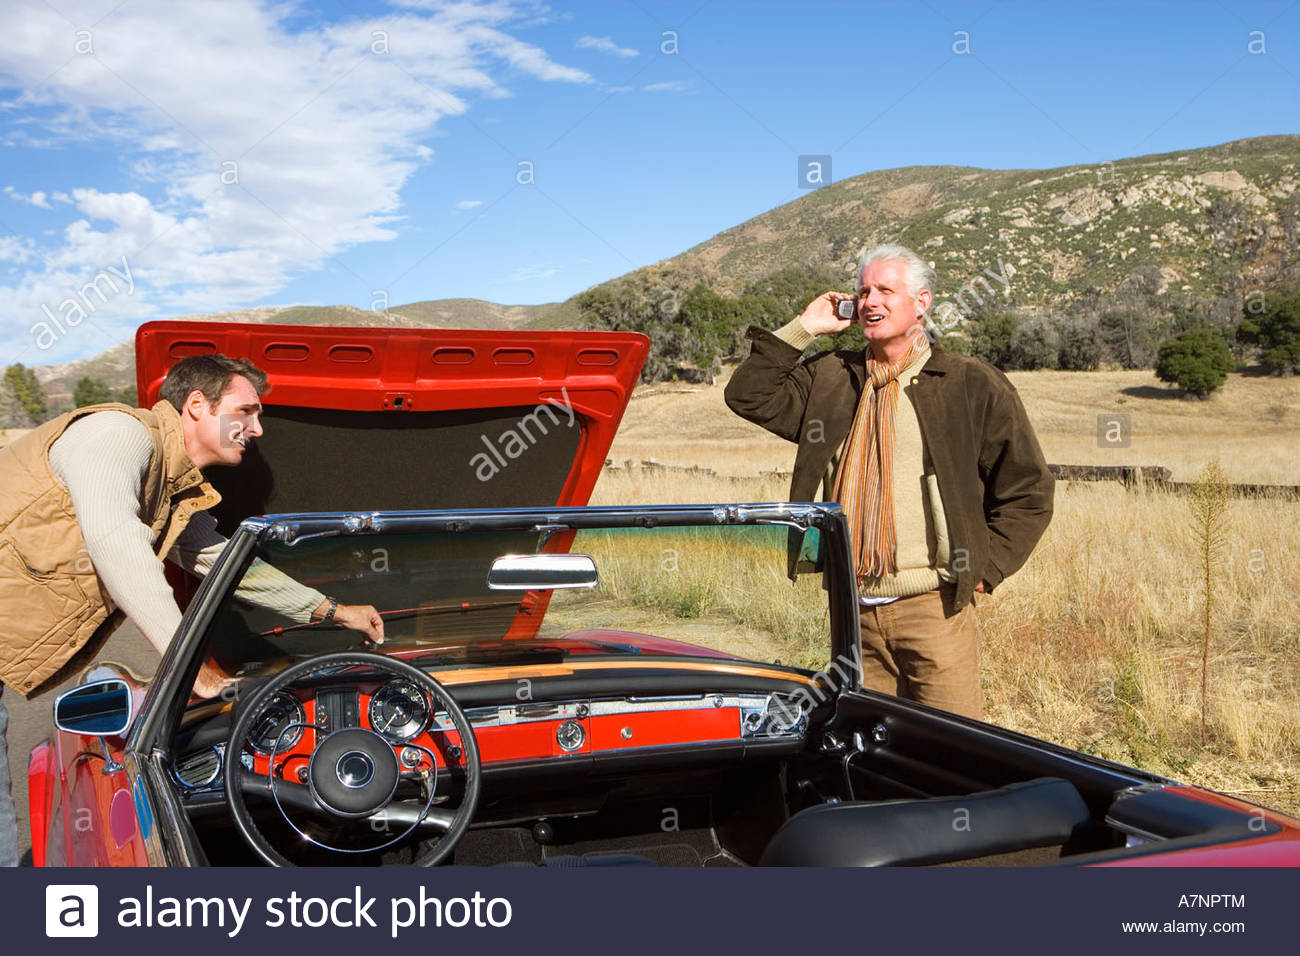 Father and son experiencing car trouble on country road man looking at engine senior man using mobile phone - Stock Image